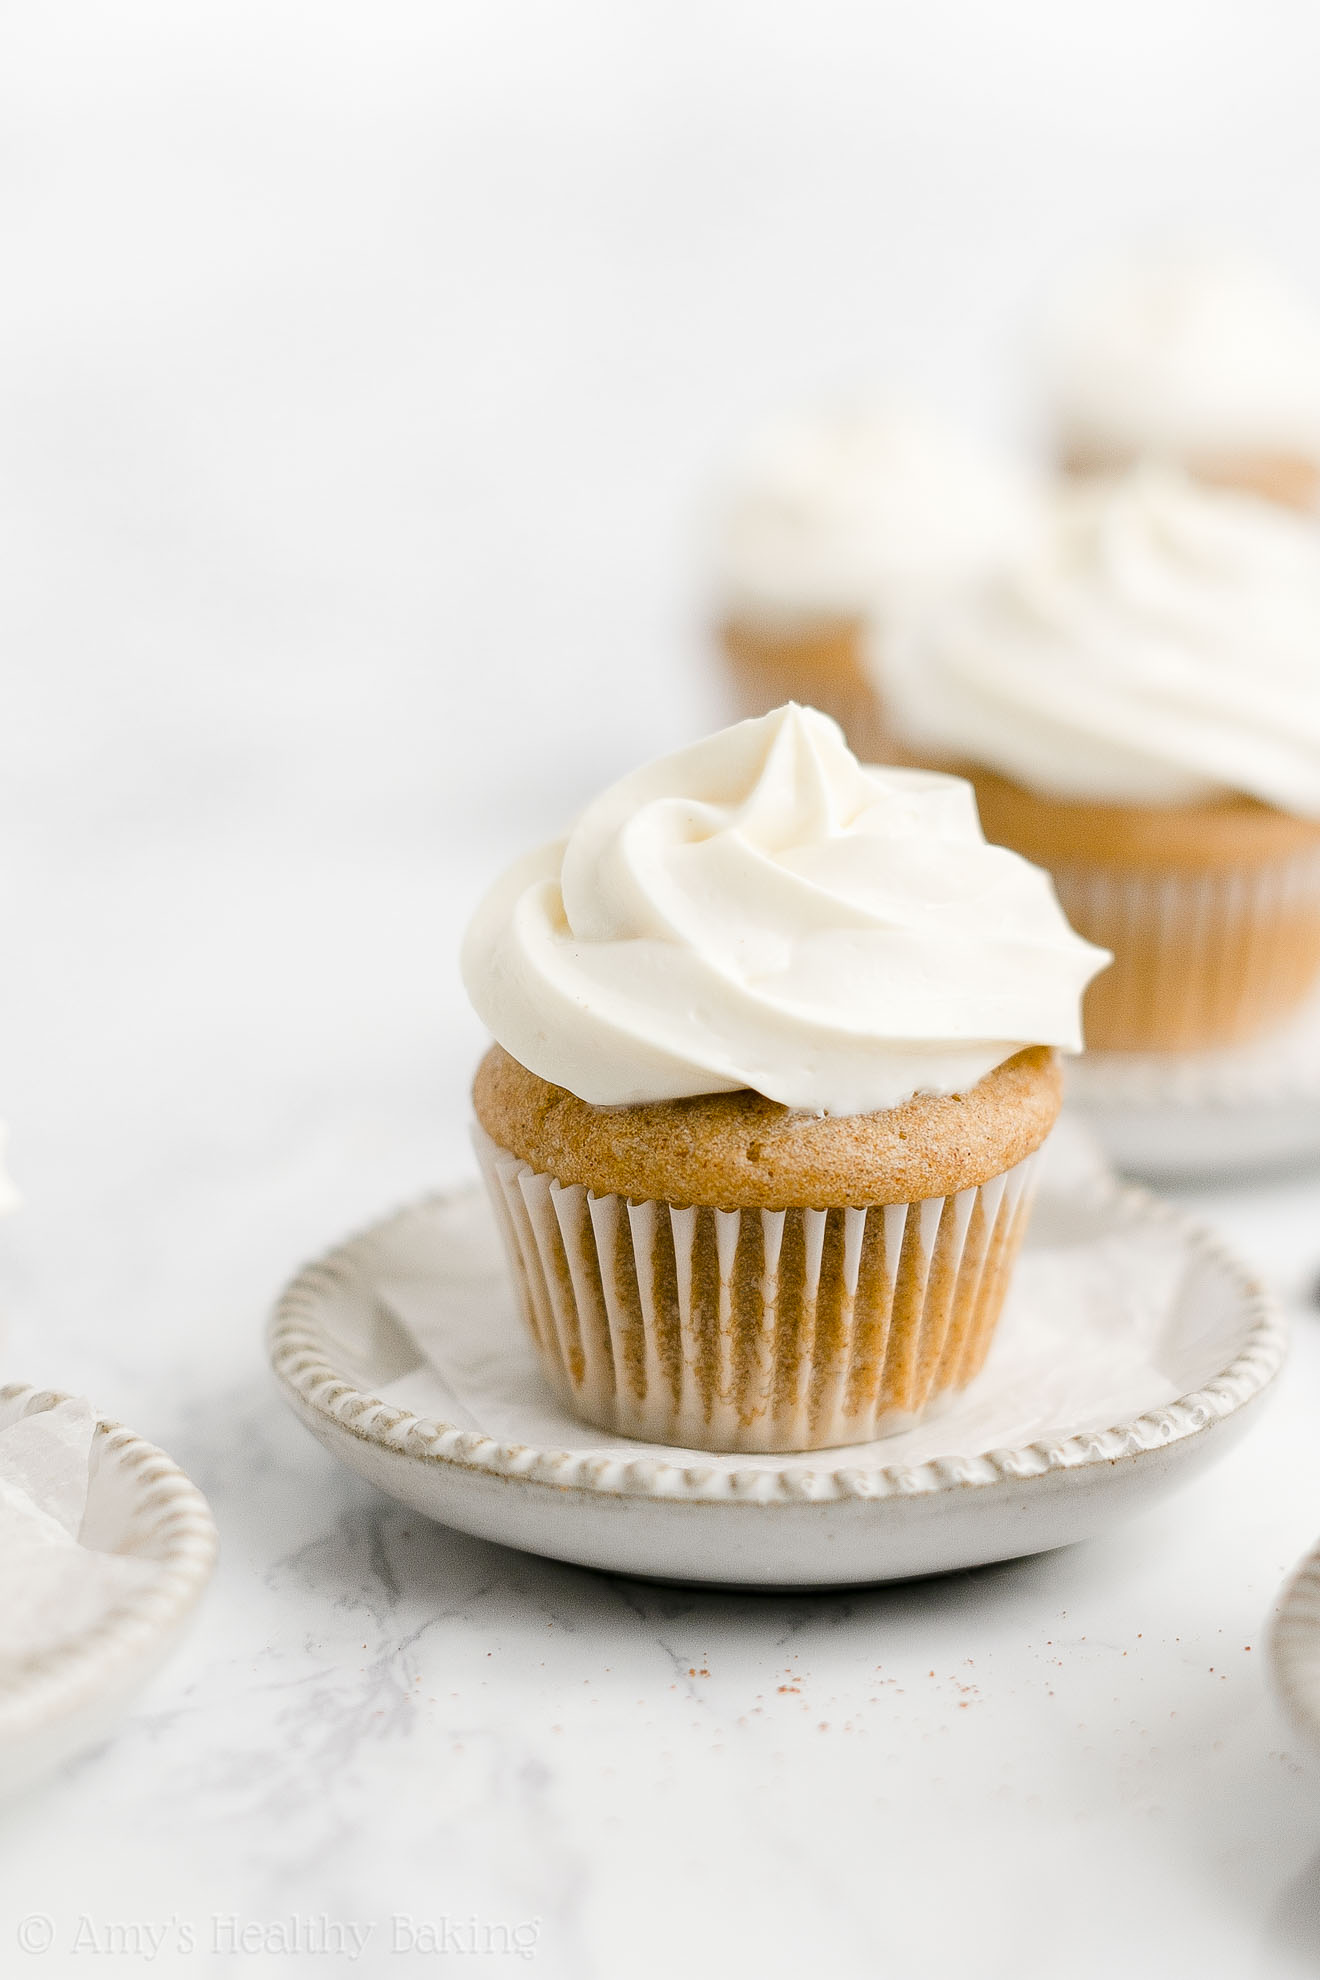 Healthy Weight Watchers Sugar Free Low Fat Mini Snickerdoodle Cupcakes